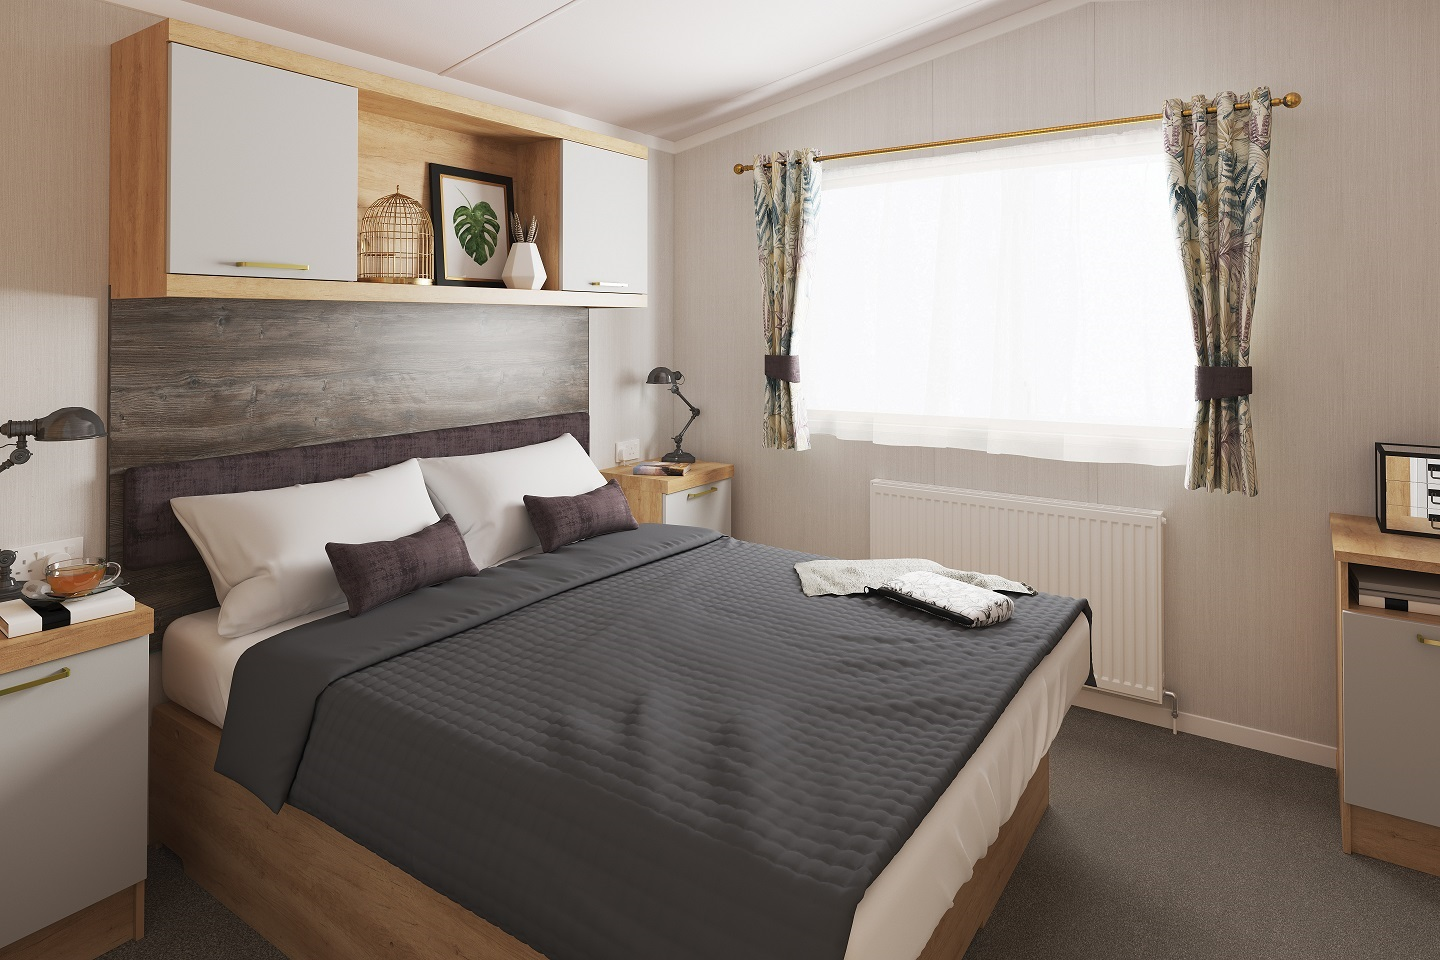 Swift Bordeaux: Static Caravans and Holiday Homes for Sale on Caravan Parks, Ramshaw, Durham and Weardale Large Image 3